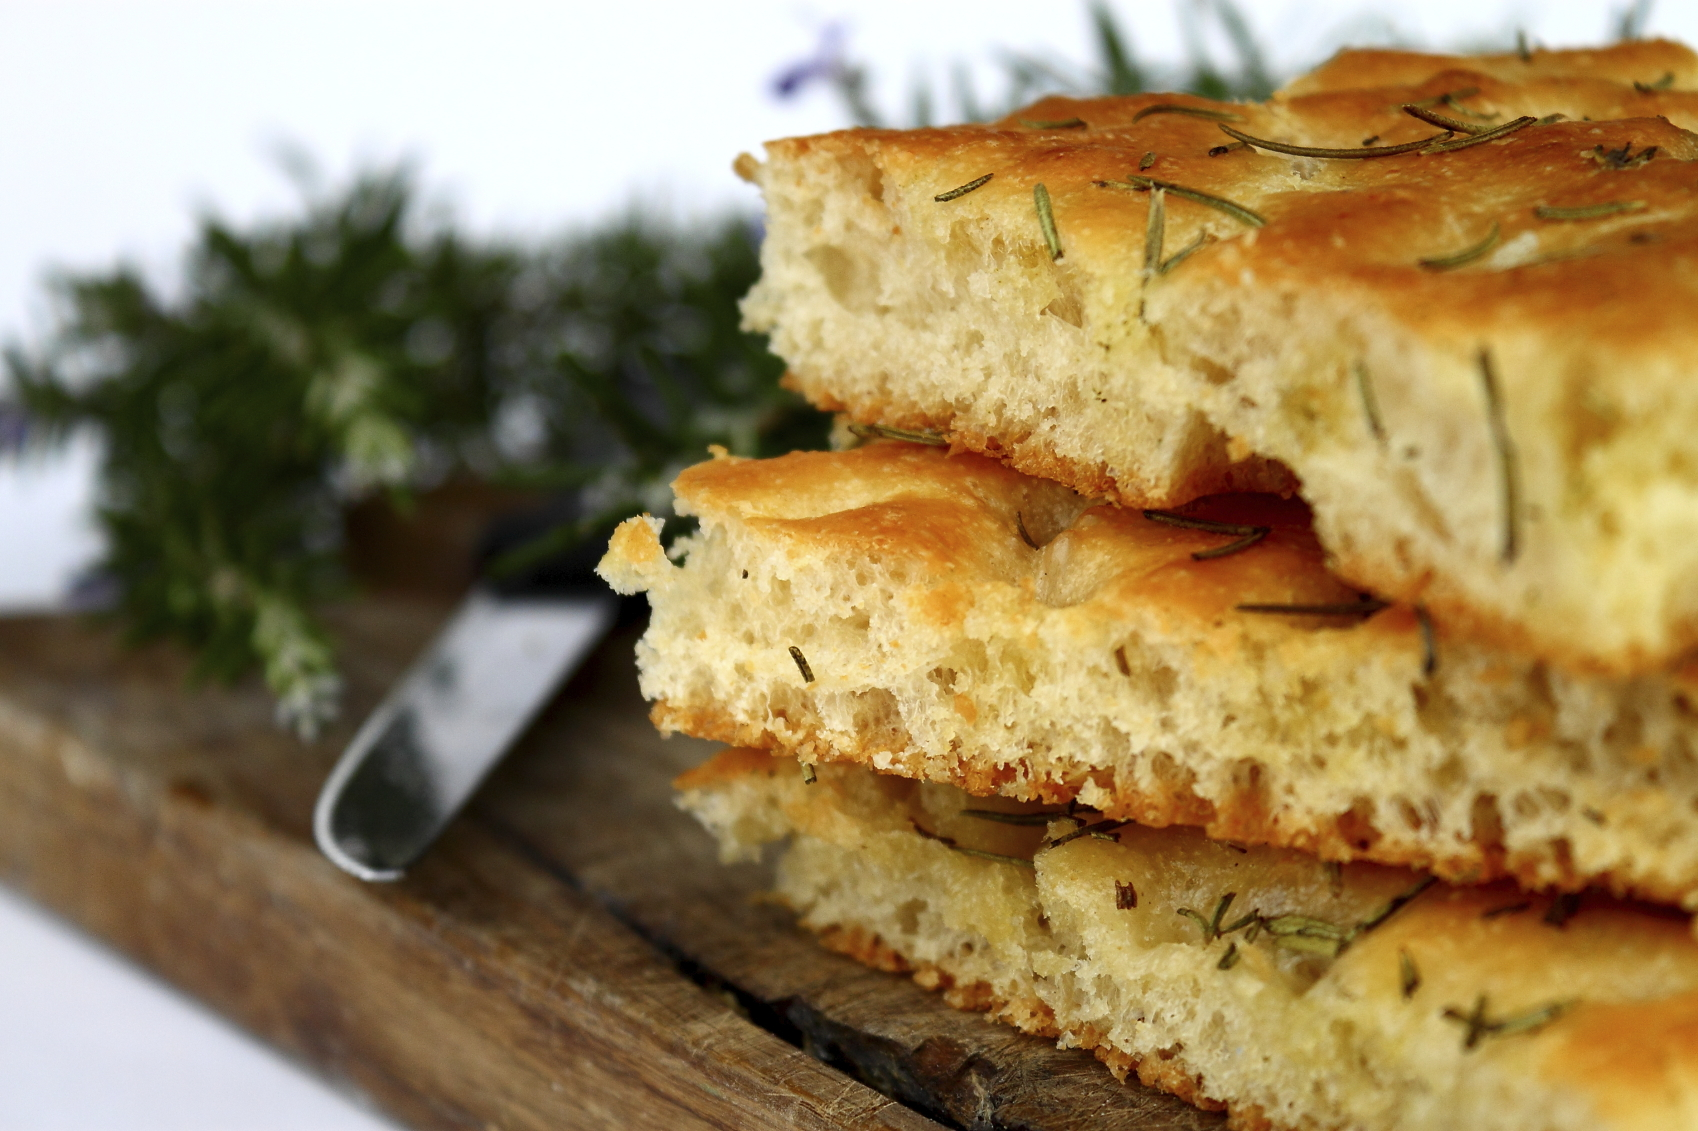 ... and here is a great recipe for foccacia, so simple, just add yoghurt